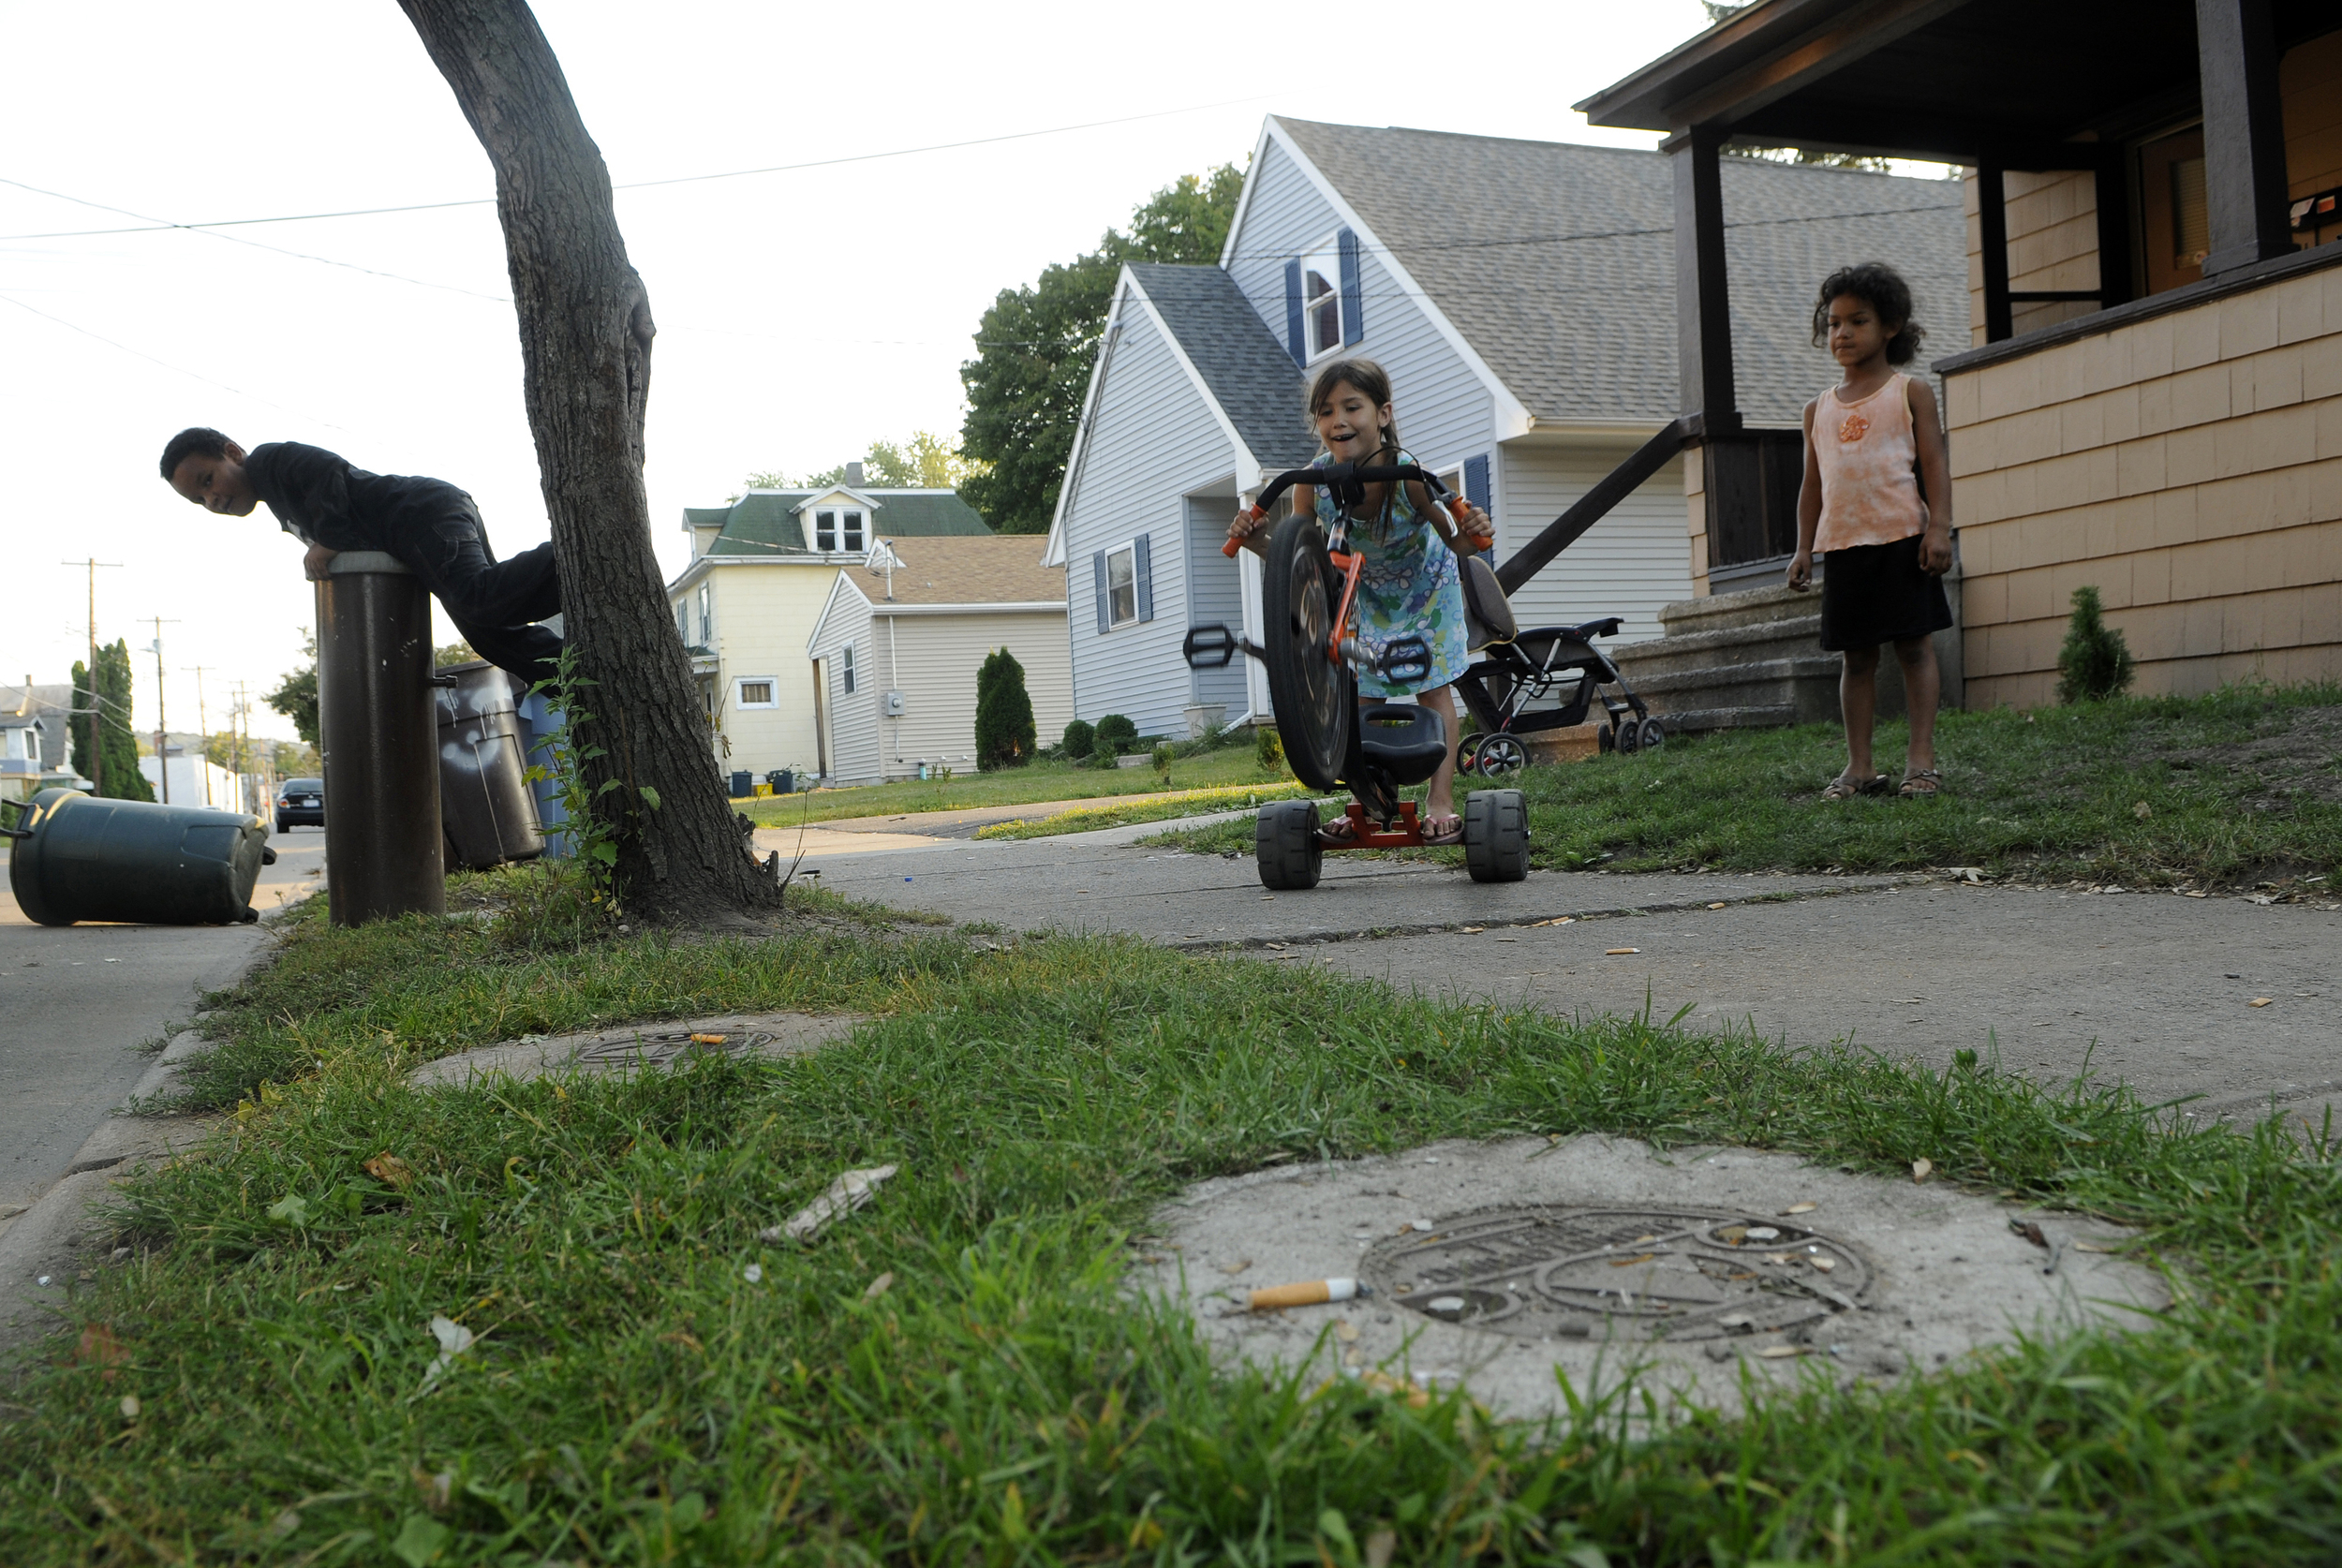 Analicia Morelock, 6, middle, her sister, Keke Haggerty, 5, right, and her neighbor, Andre Weather, 6, left, play in front of their Jackson Avenue home. In the foreground are monitoring wells that are regularly tested for TCE and other chemicals.